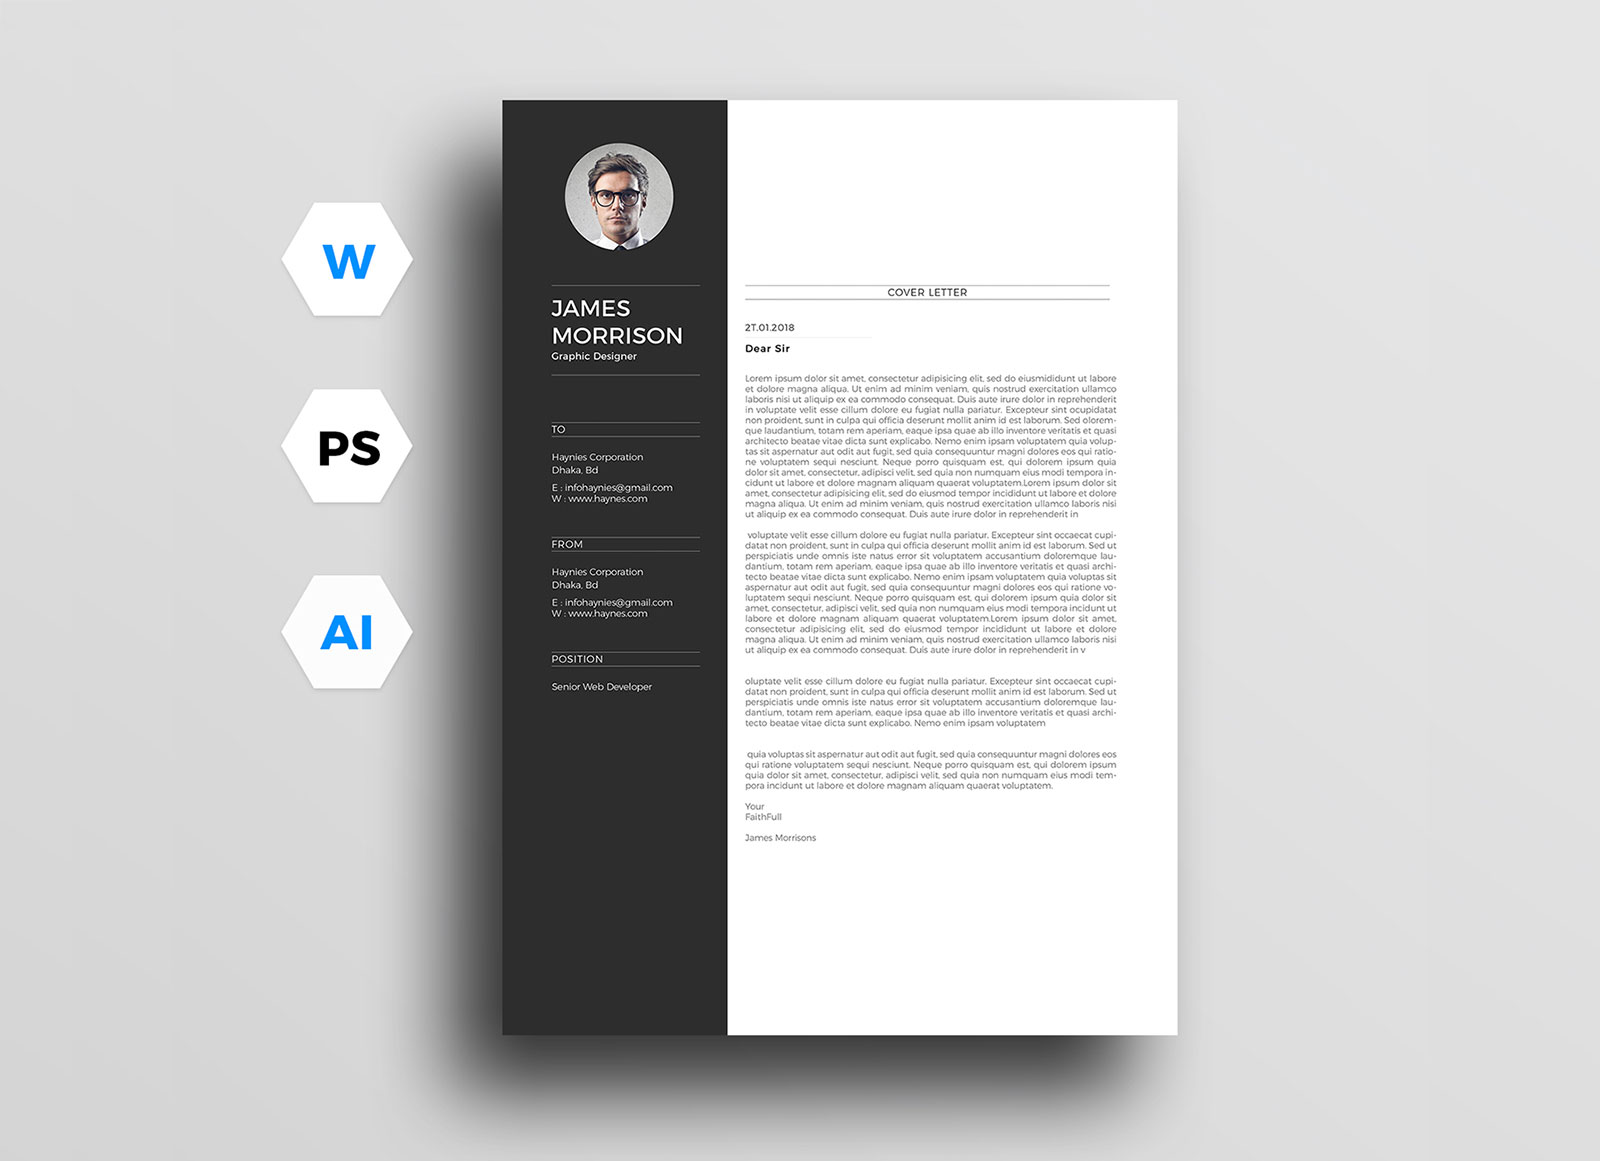 free minimal cv resume template in word, ai & psd - good resume